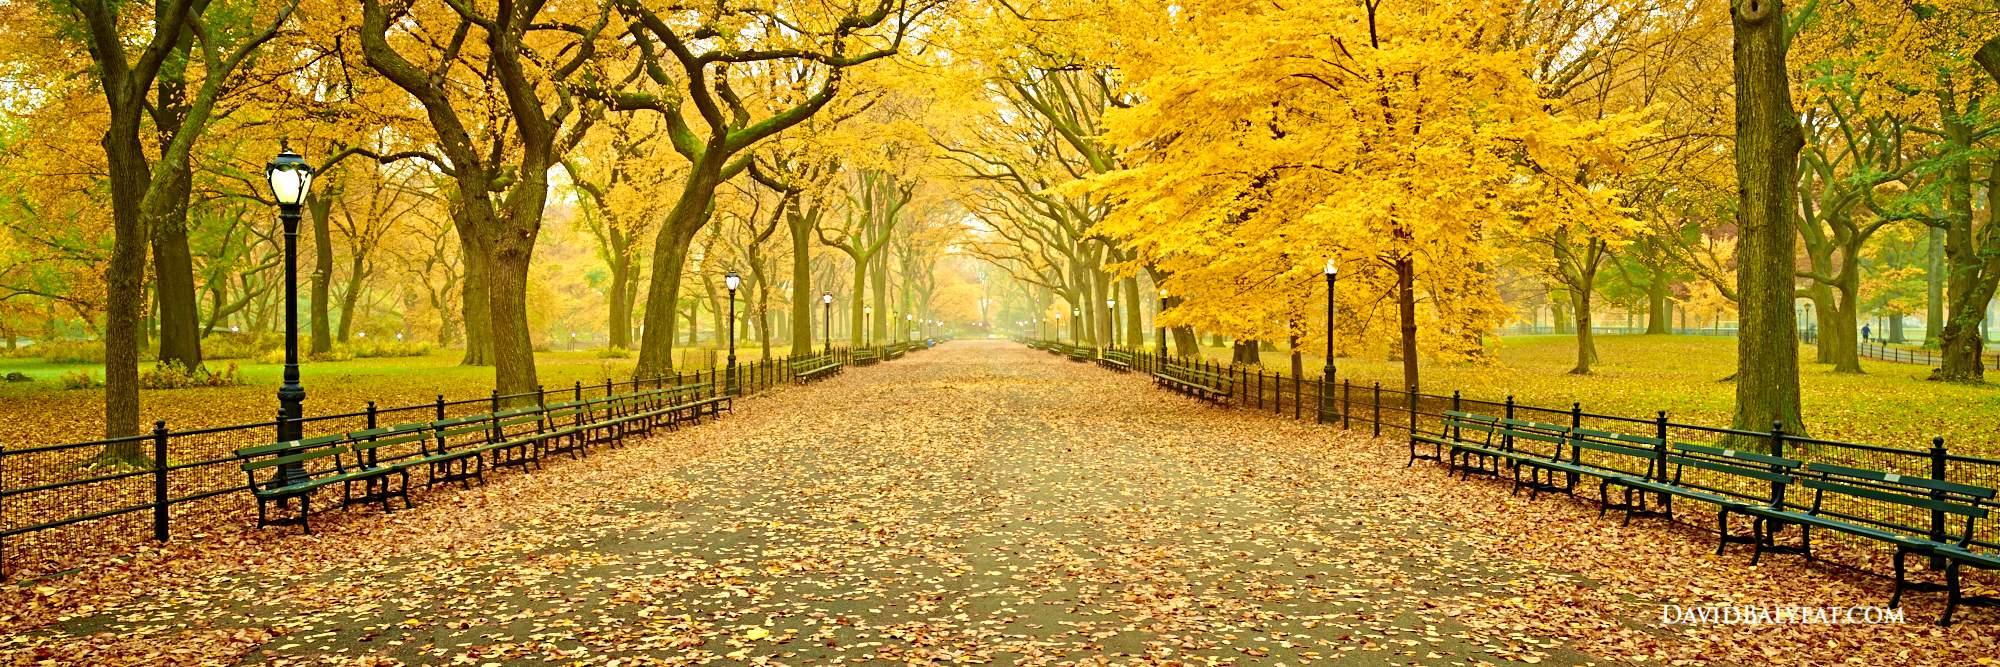 Central Park Panoramic New York City autumn fall foliage literary walk tree-lined mall high-definition HD professional photography